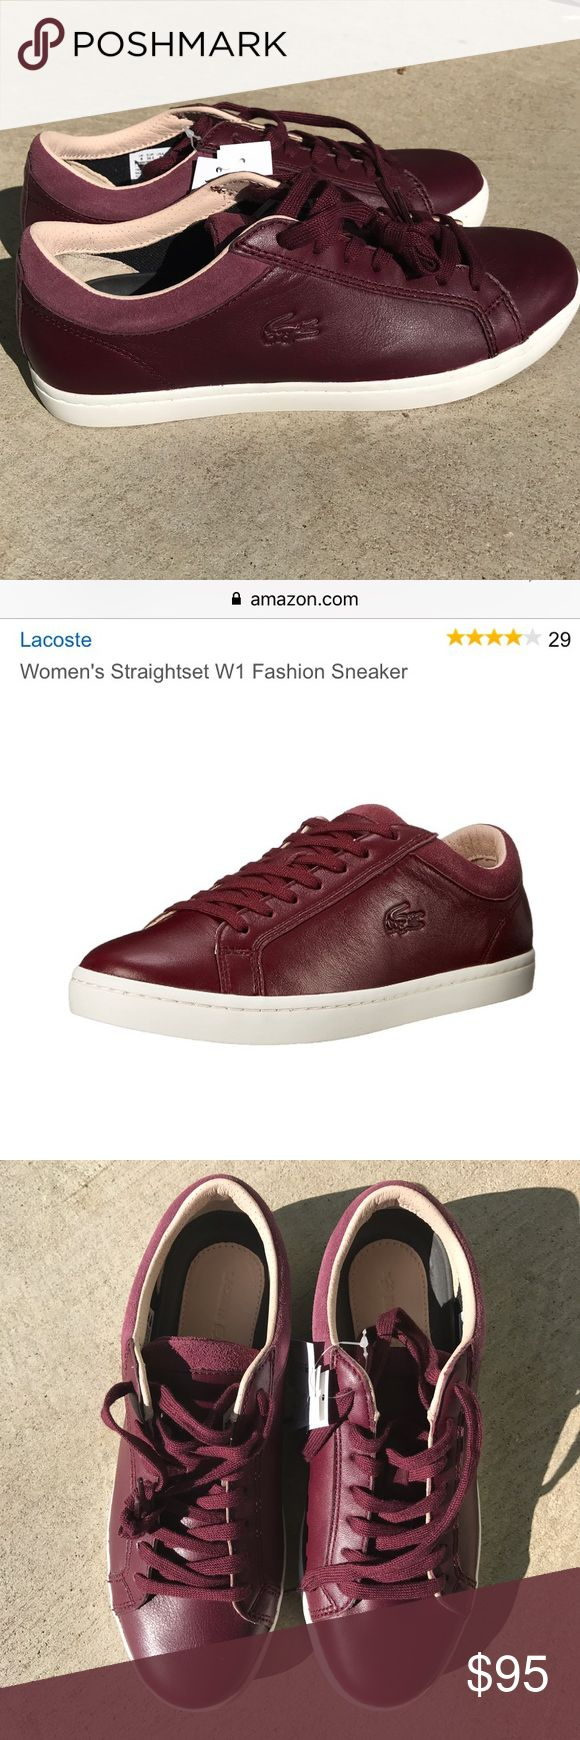 NWT Lacoste Sneakers NWT Lacoste Straightset Leather Sneakers. Deep Burgundy 100% leather upper. Rubber soles. Low top casual sneaker with a lightly padded suede collar and embossed logo. Size 8. I have these in a different sizes and they are so comfortable! No trades. Retails $119 currently on Amazon. As seen in Glamour Magazine! Price firm only on Flash Sales, otherwise open to reasonable offers! Lacoste Shoes Sneakers